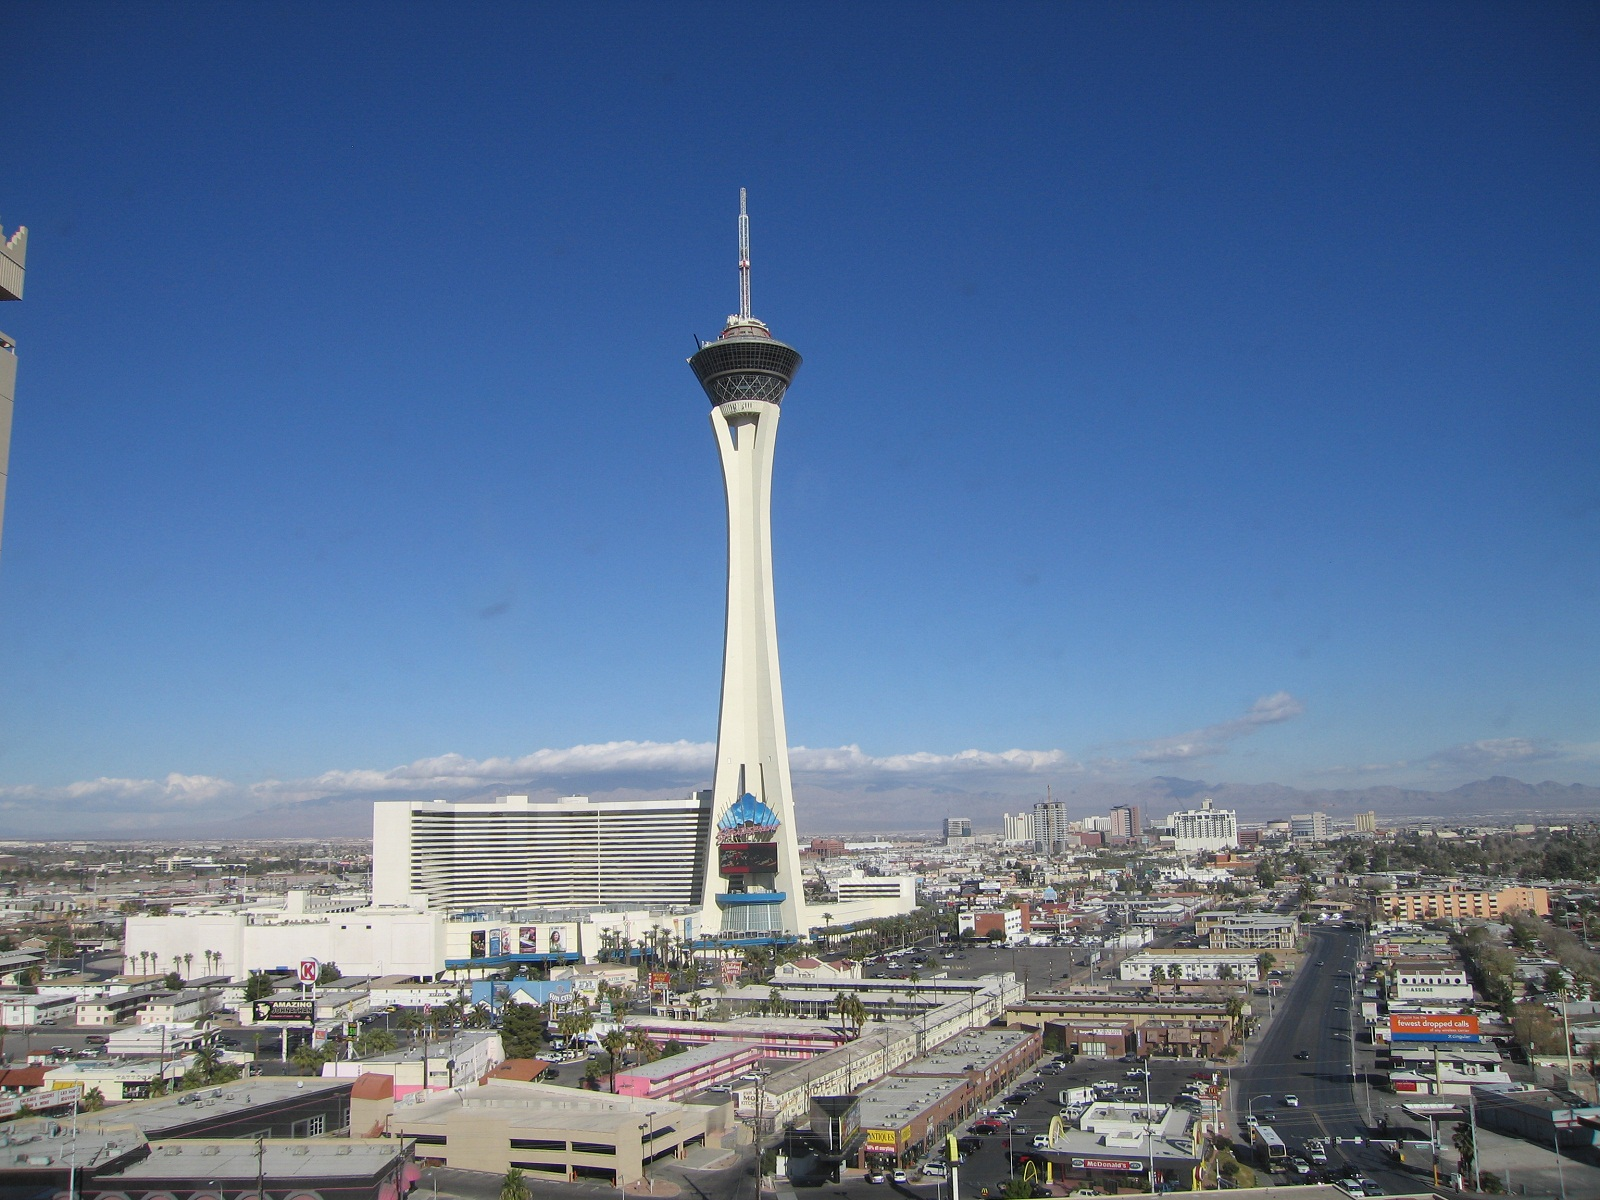 Top Rotating Restaurants Stratosphere Las Vegas Usa Hotel View